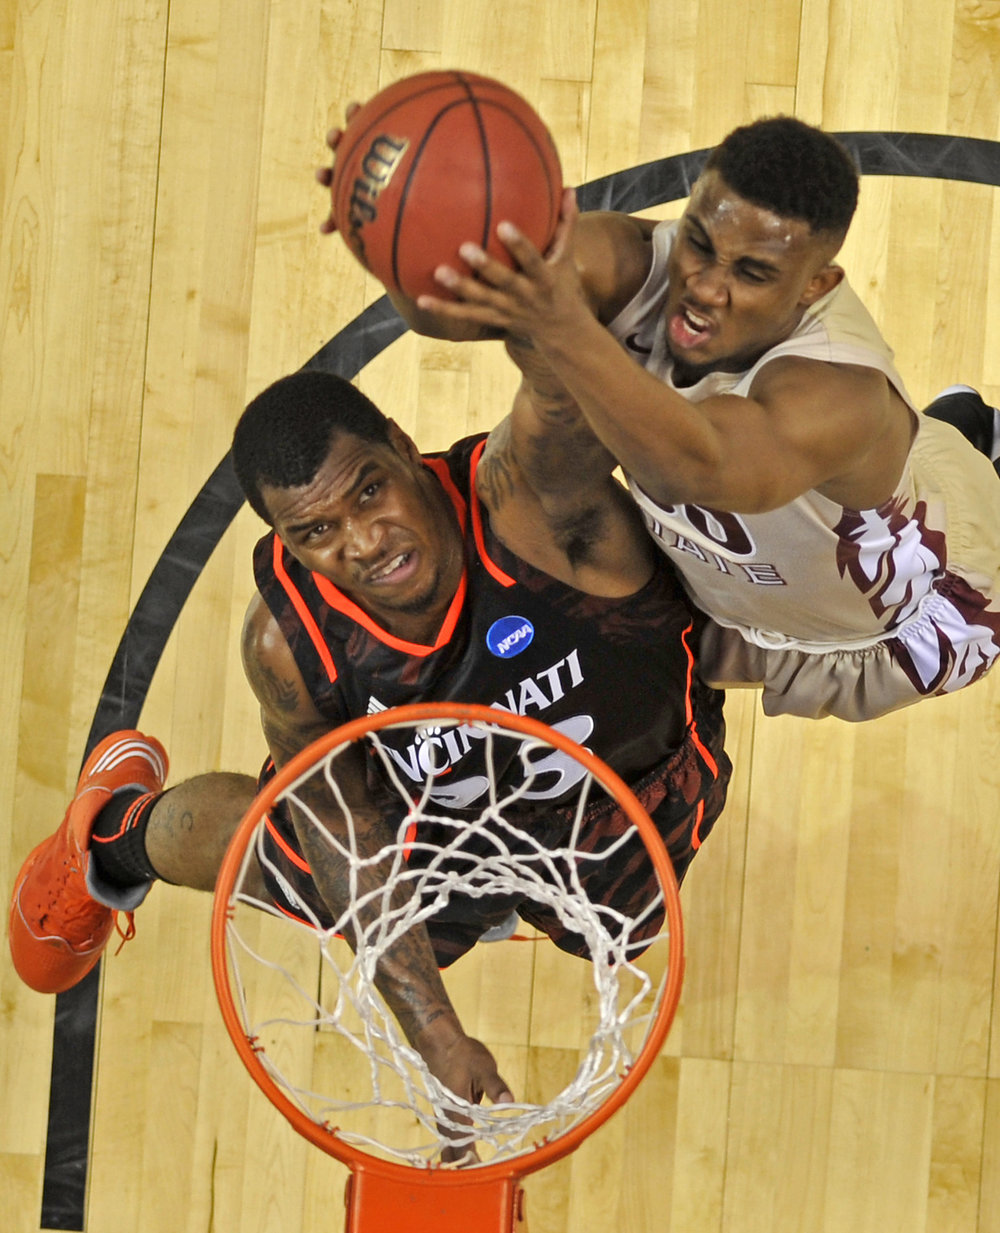 Cincinnati guard Sean Kilpatrick (23) fights for a rebound with Florida State guard Ian Miller during the first half of the NCAA Men's Third Rounds at Bridgestone Arena in Nashville, Tenn., Sunday, March 18, 2012.